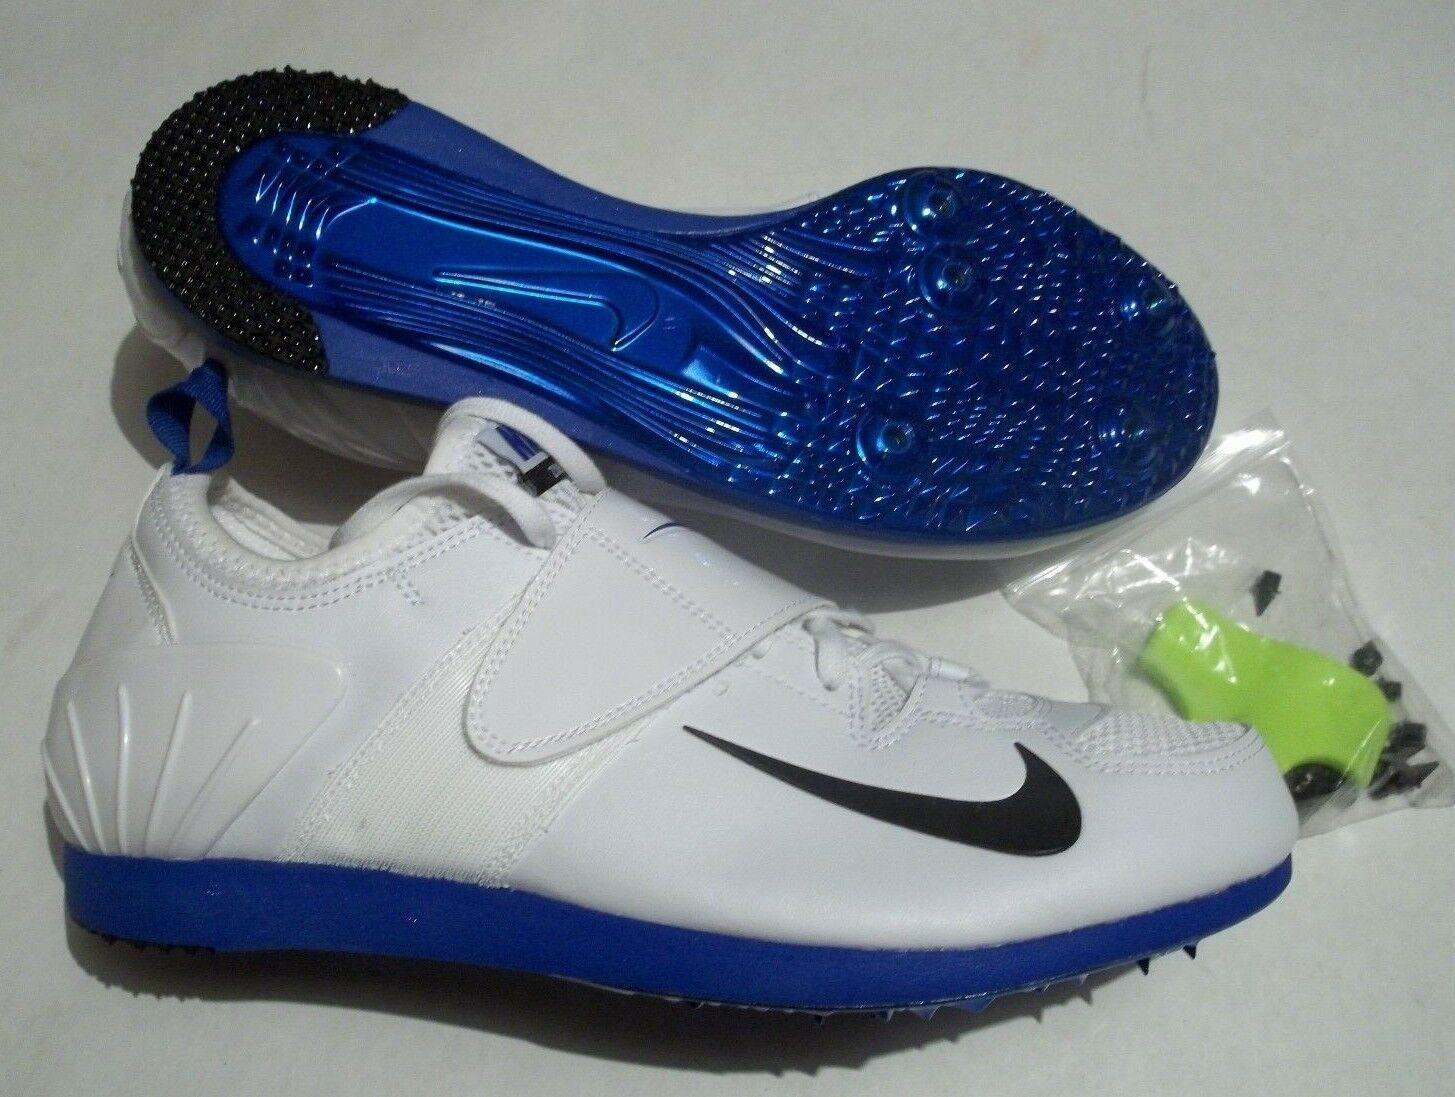 New Nike Zoom PV II Pole Vault Track Shoes With Spikes & Tool 317404-100